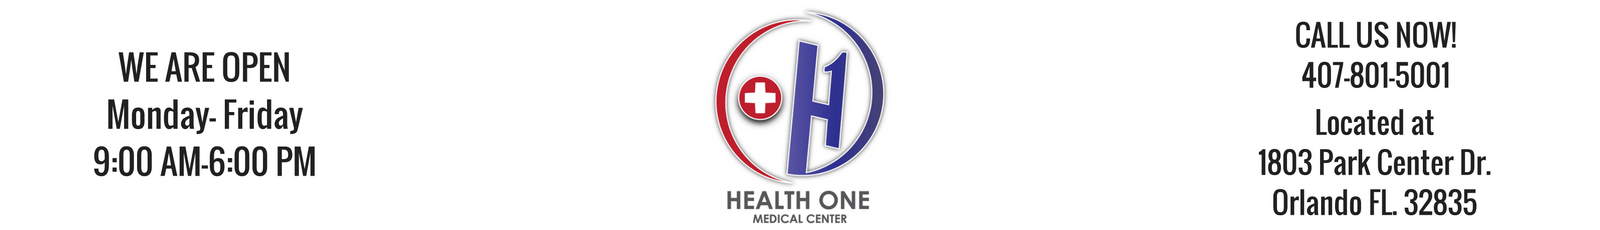 Health One Medical Center